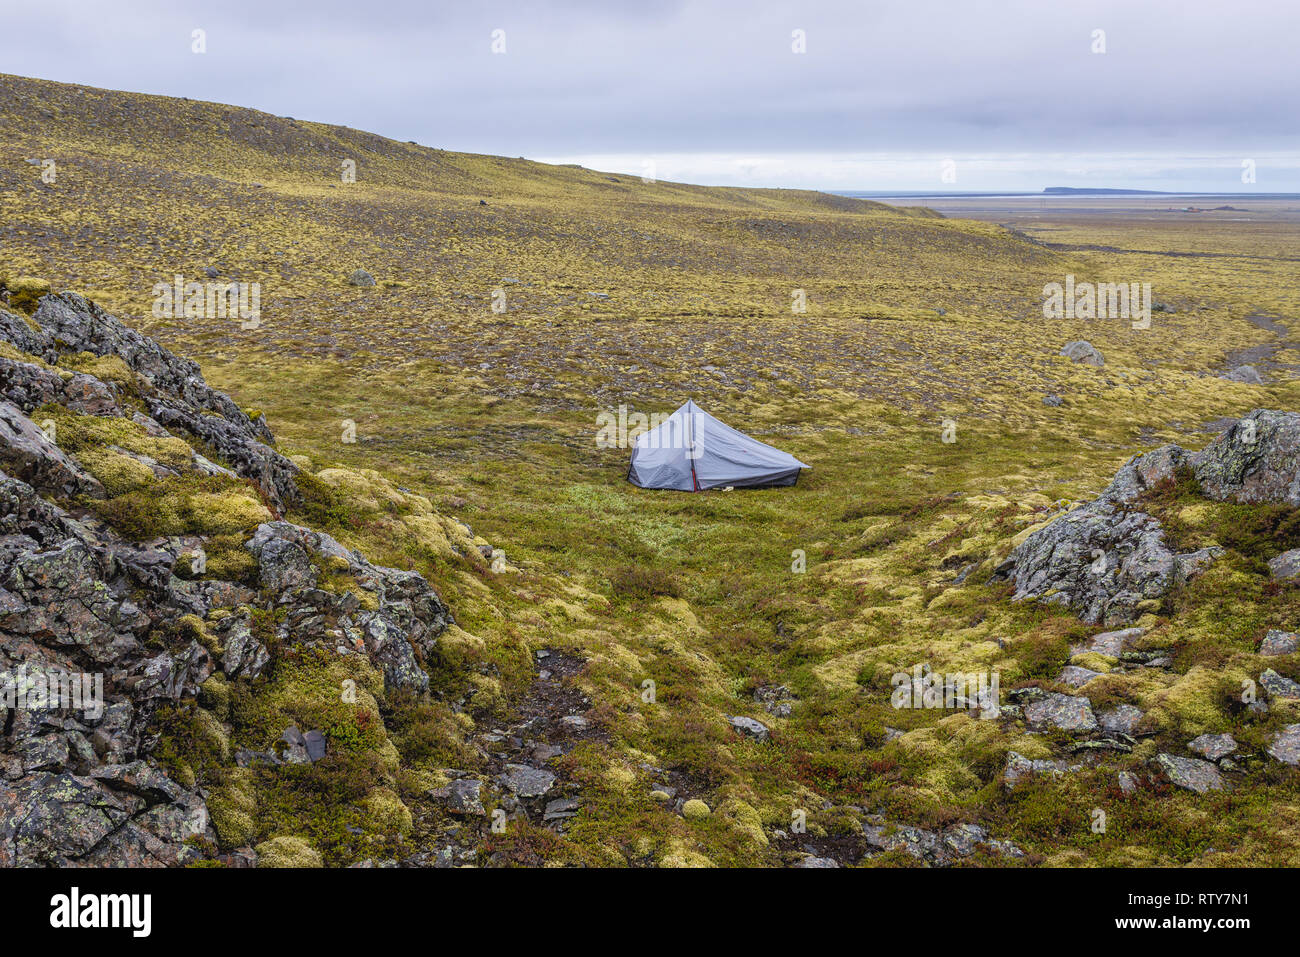 Wild camping in southeast part of Iceland - Stock Image